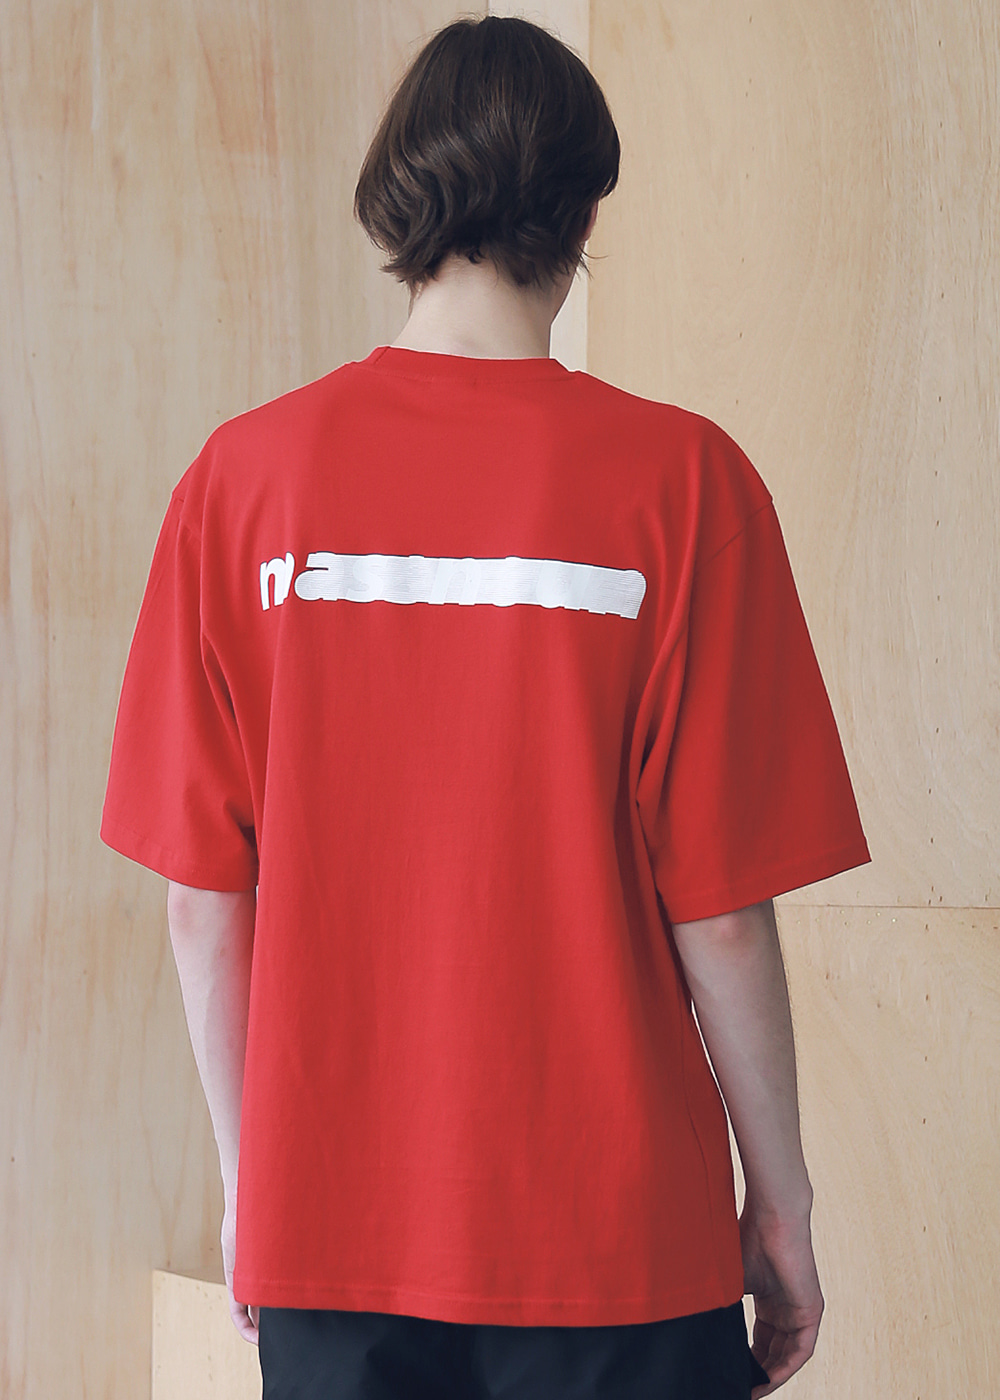 SL LOGO SEVERAL LINE OVERSIZED T-SHIRTS MSNTS006-RD